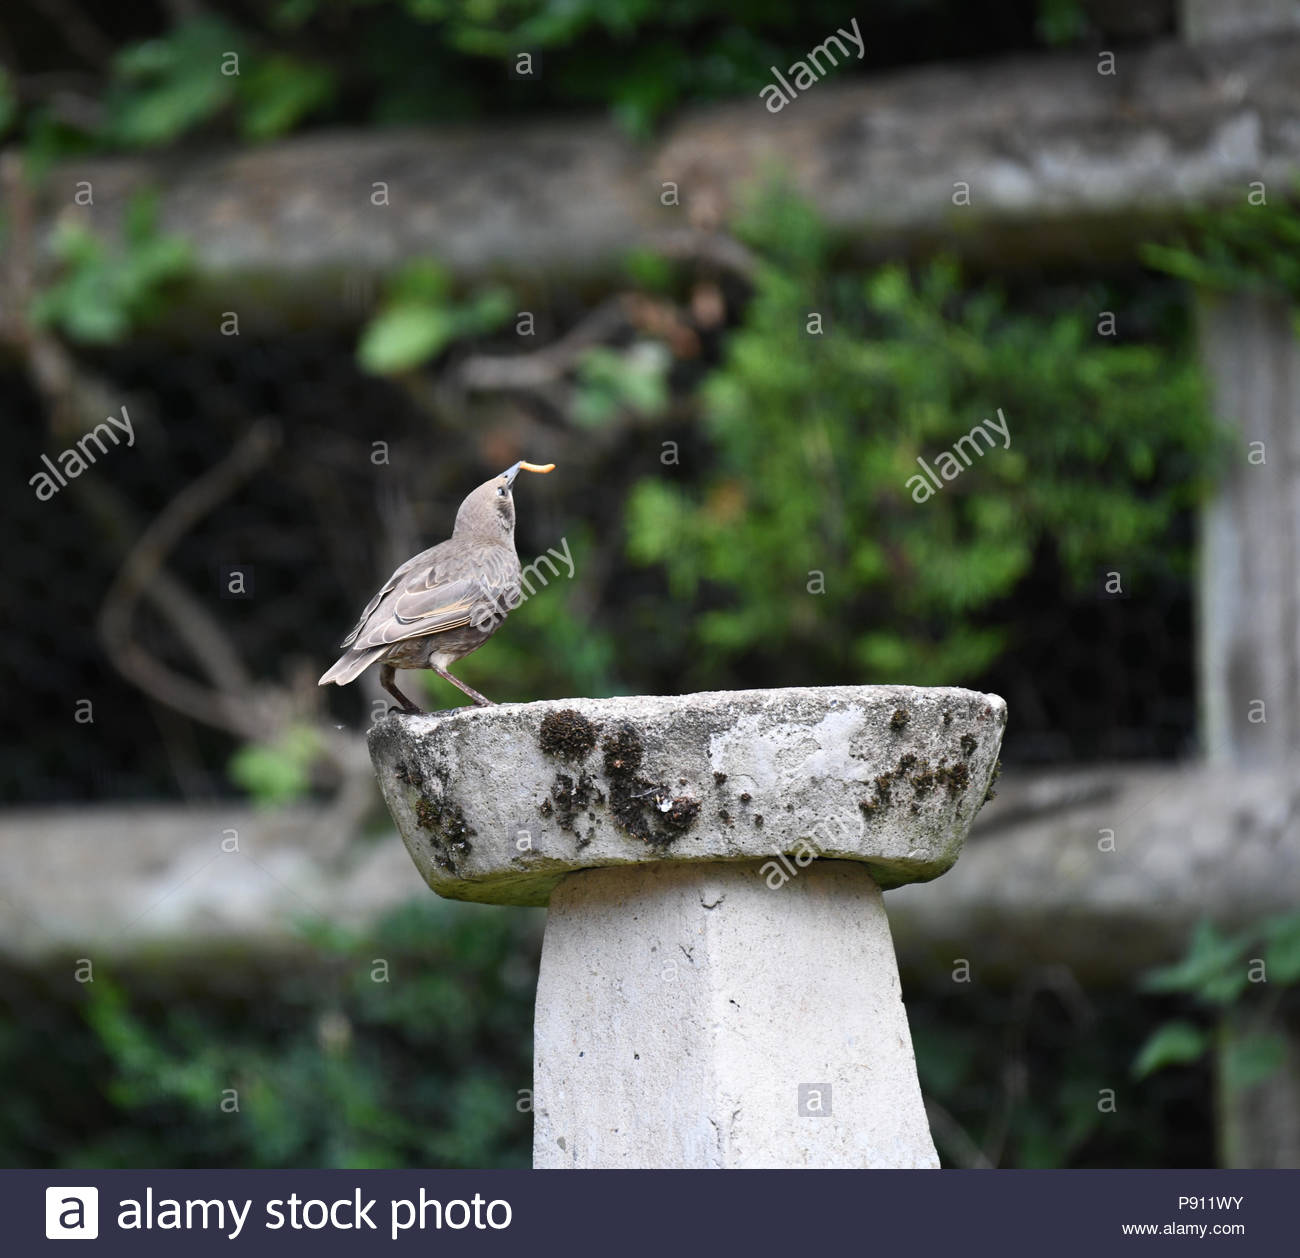 Juvenile starlings feeding on a bird table in an English country garden - Stock Image